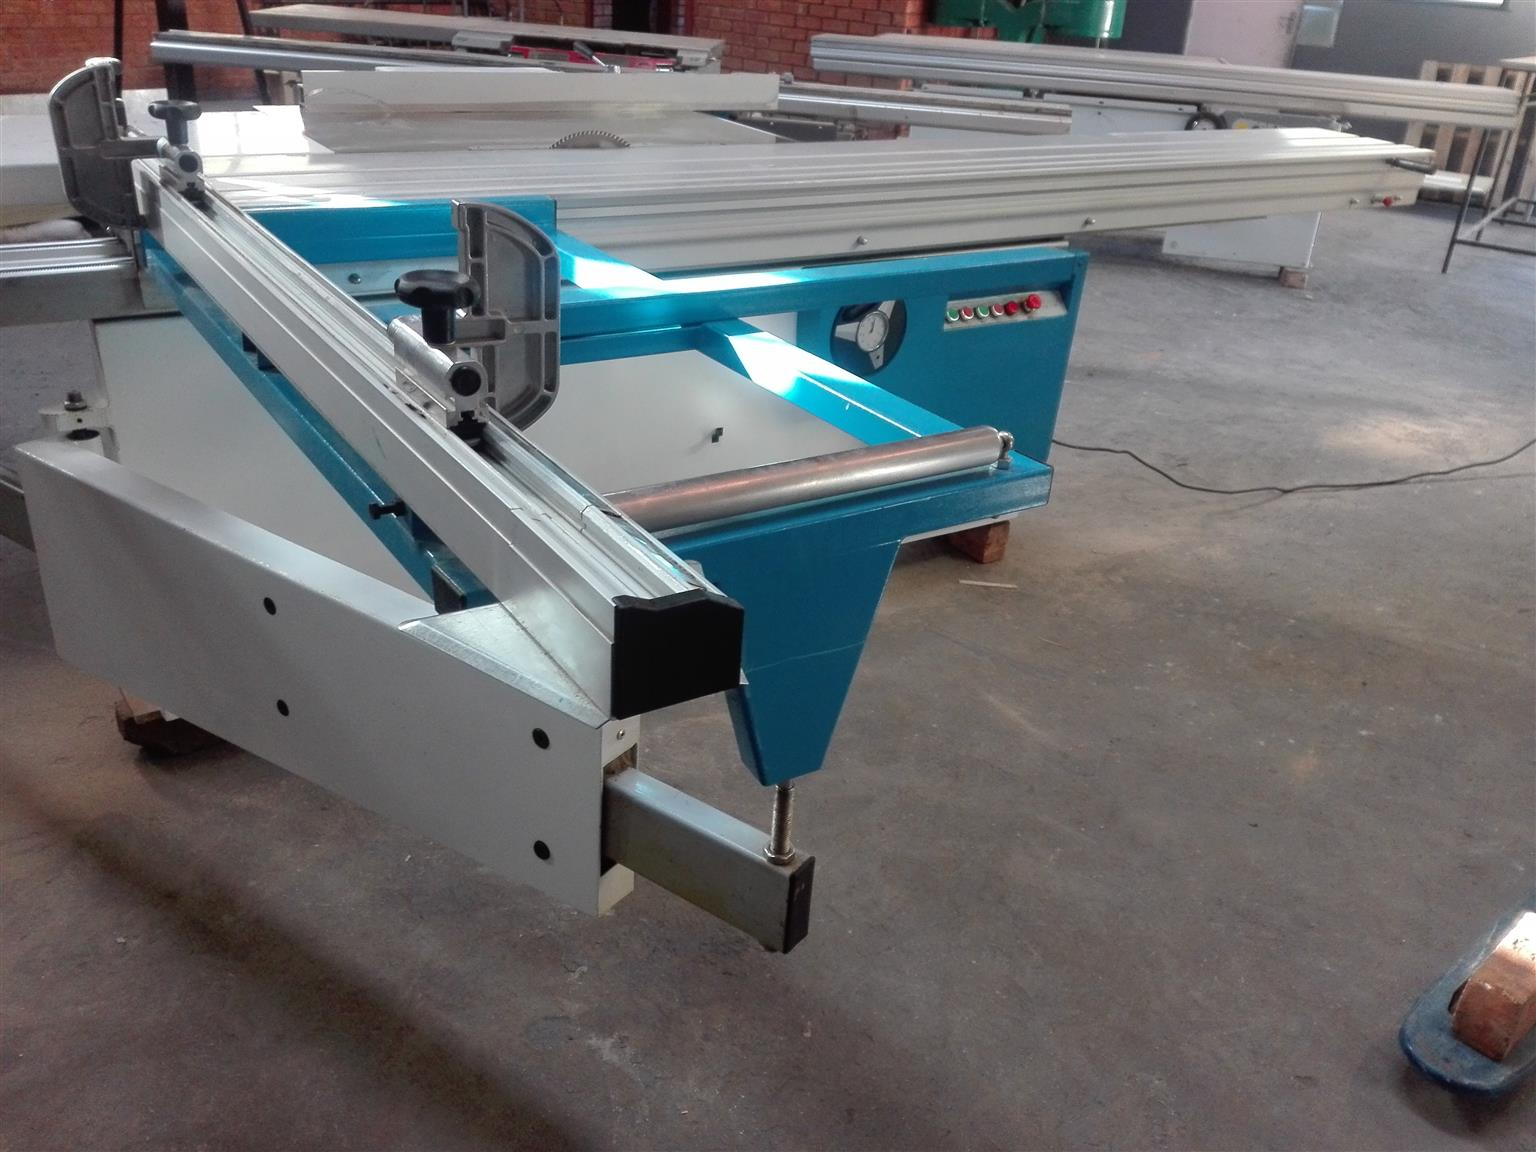 Panel Saw for Sale - Winstar MJ45YA in Excellent Condition